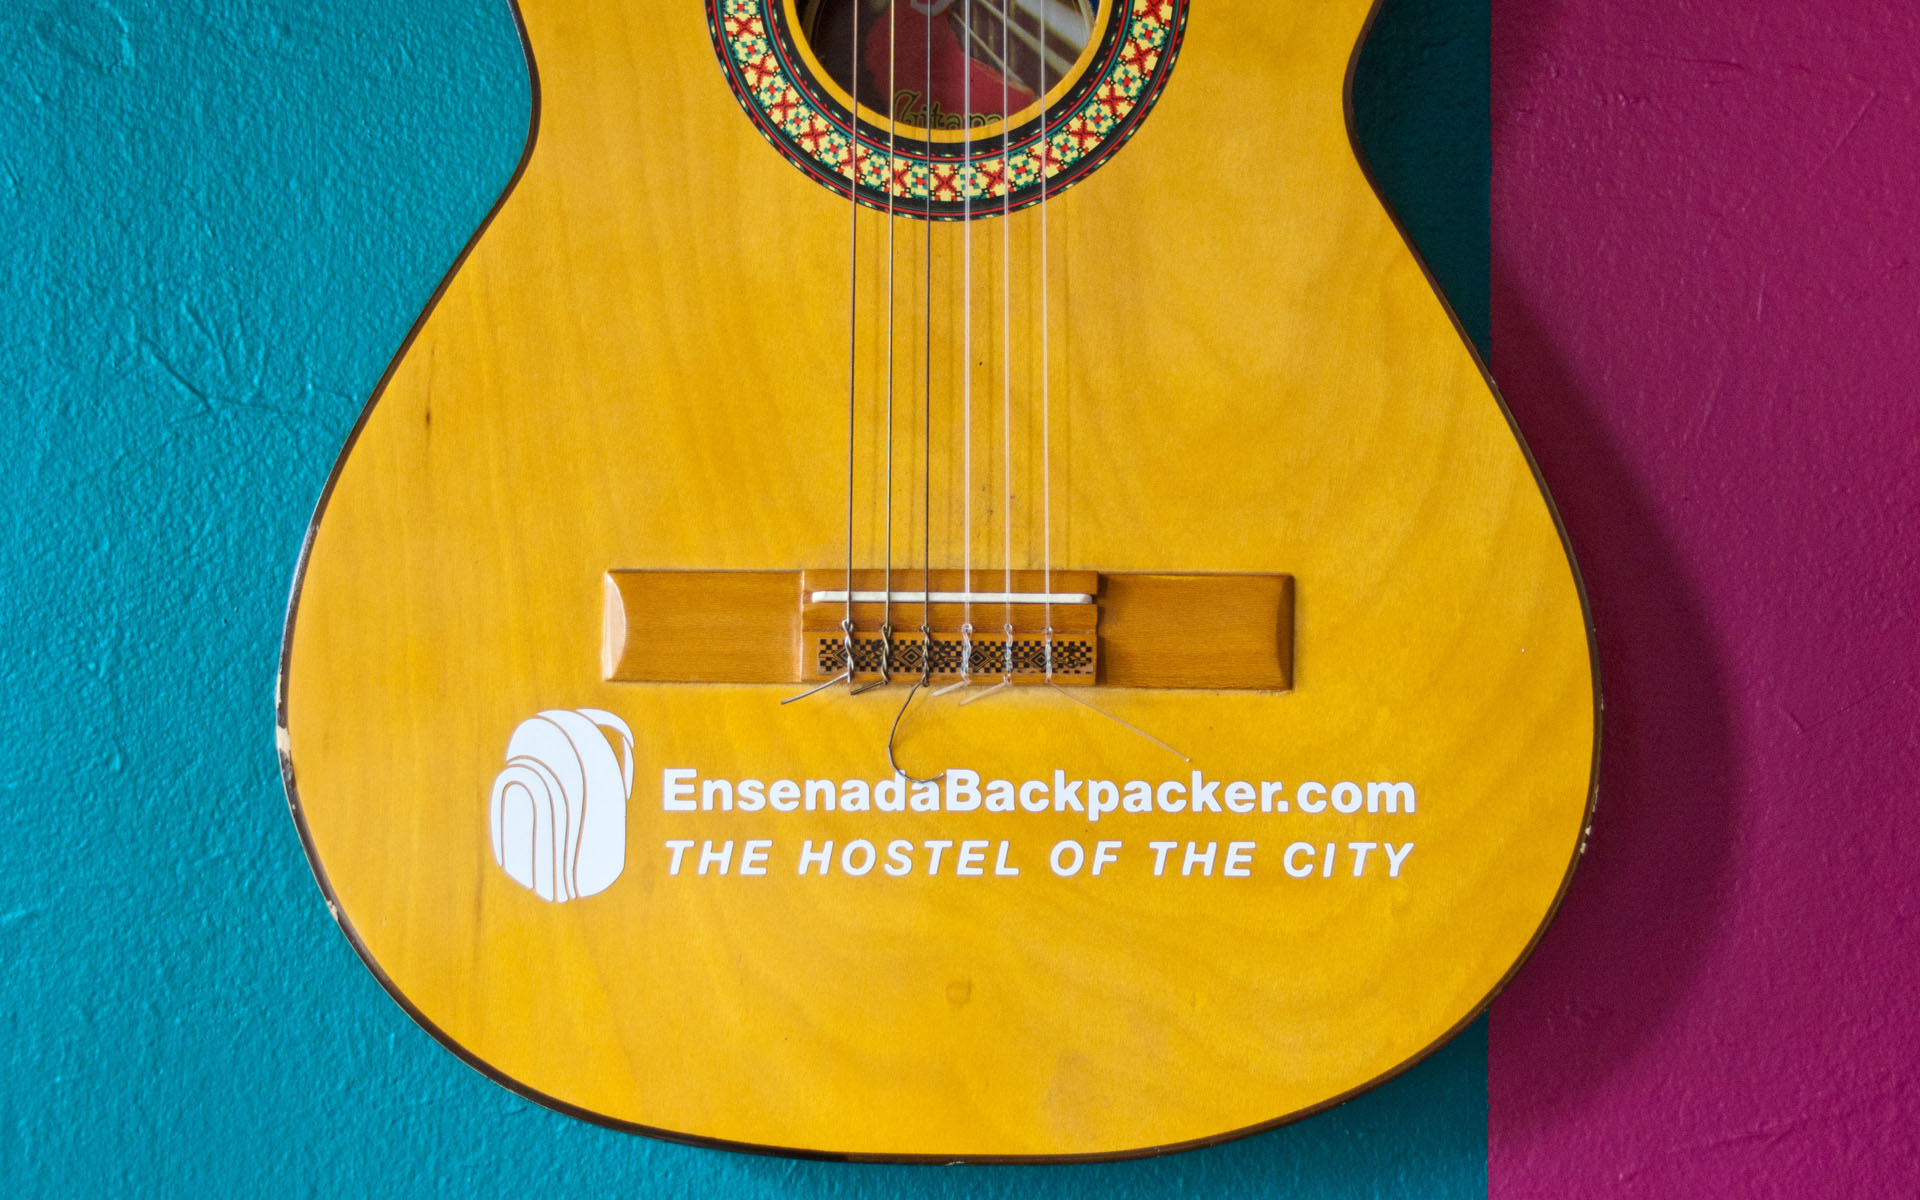 Ensenada Backpacker